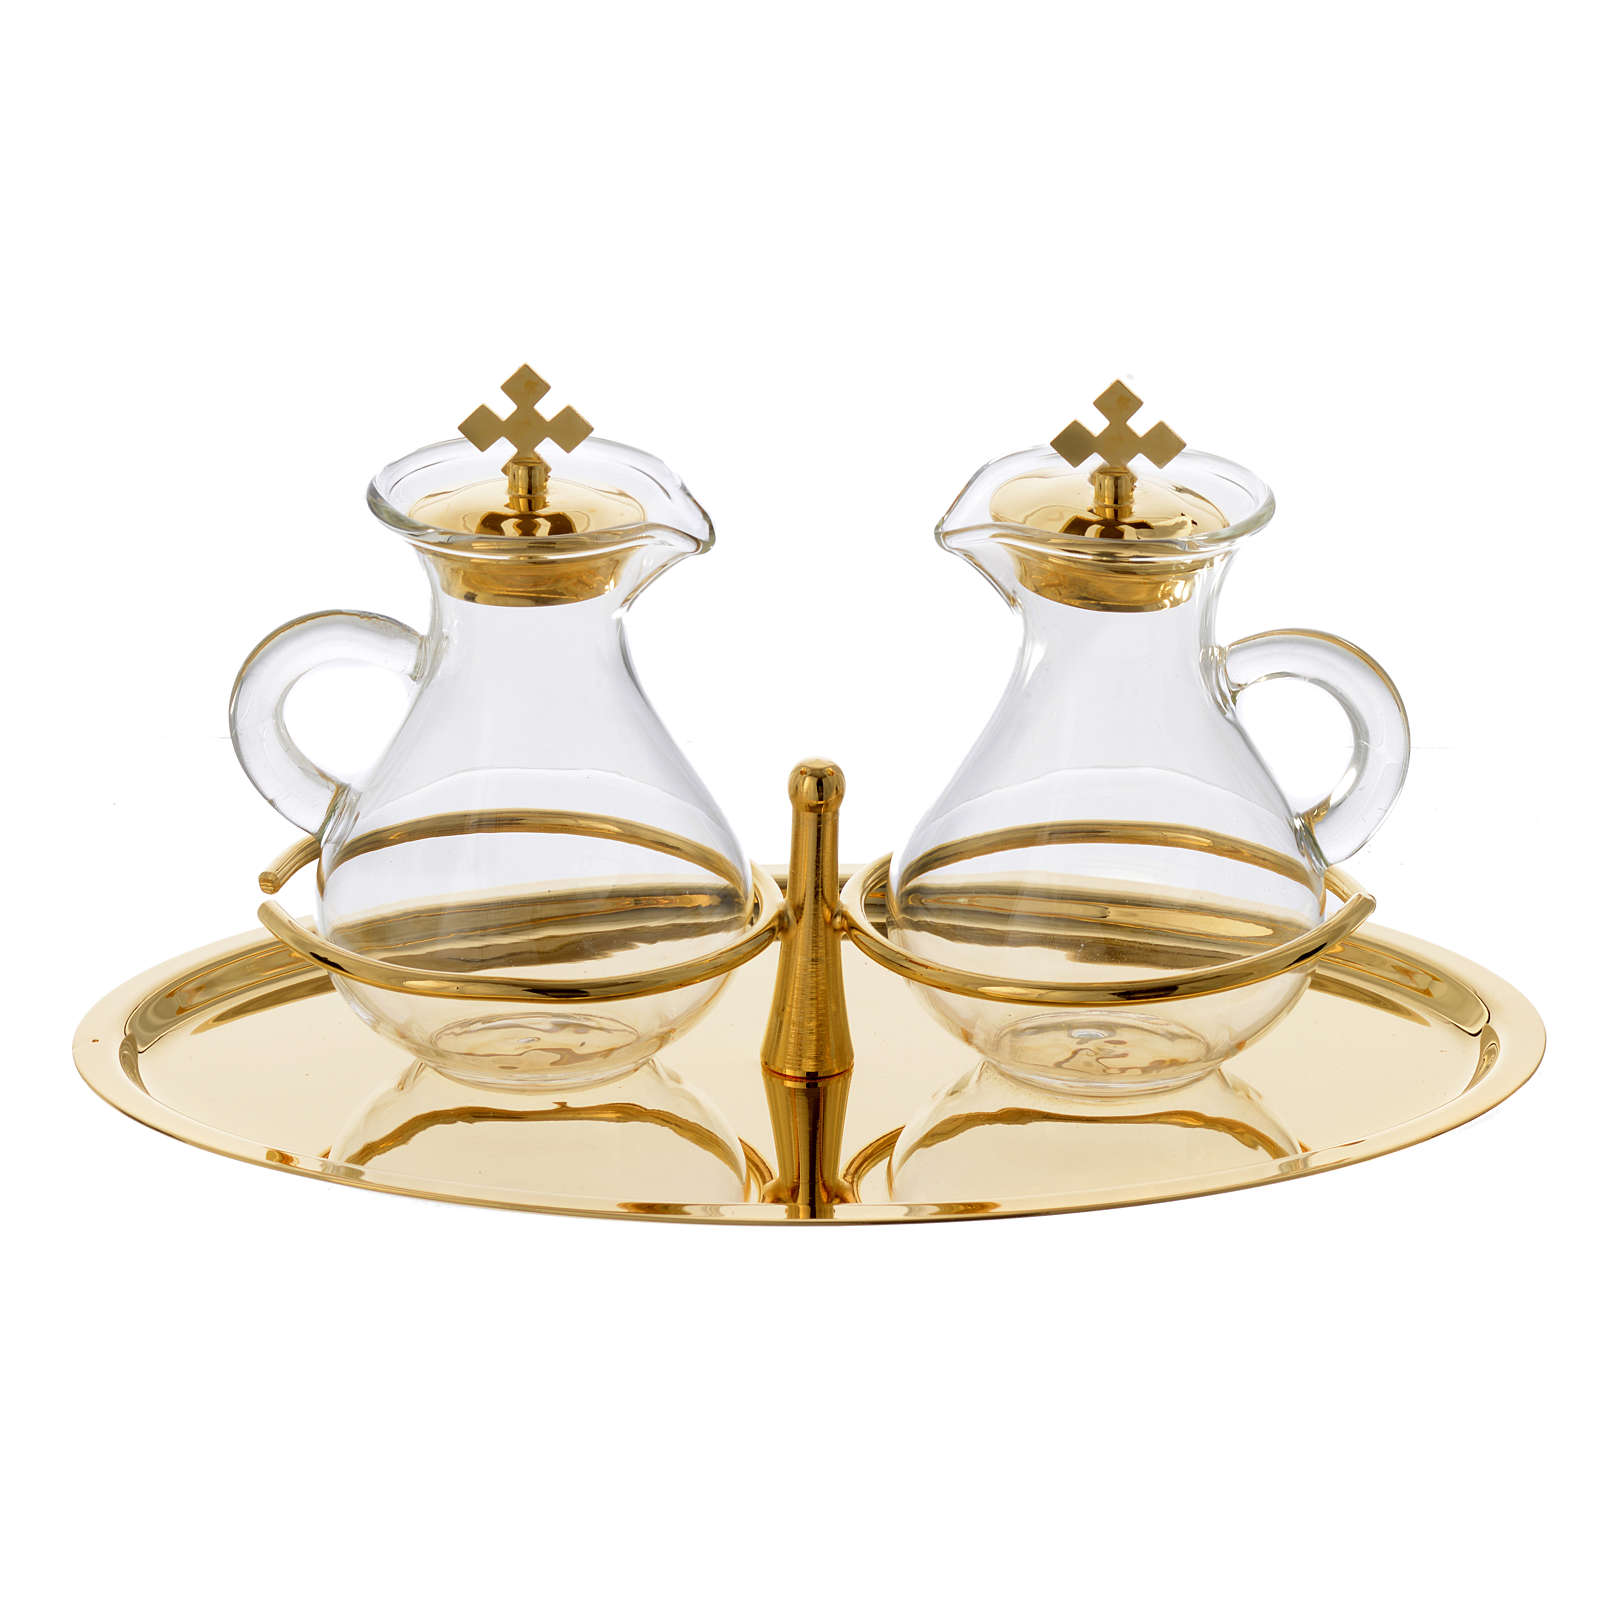 Glass cruet set with brass tray 4